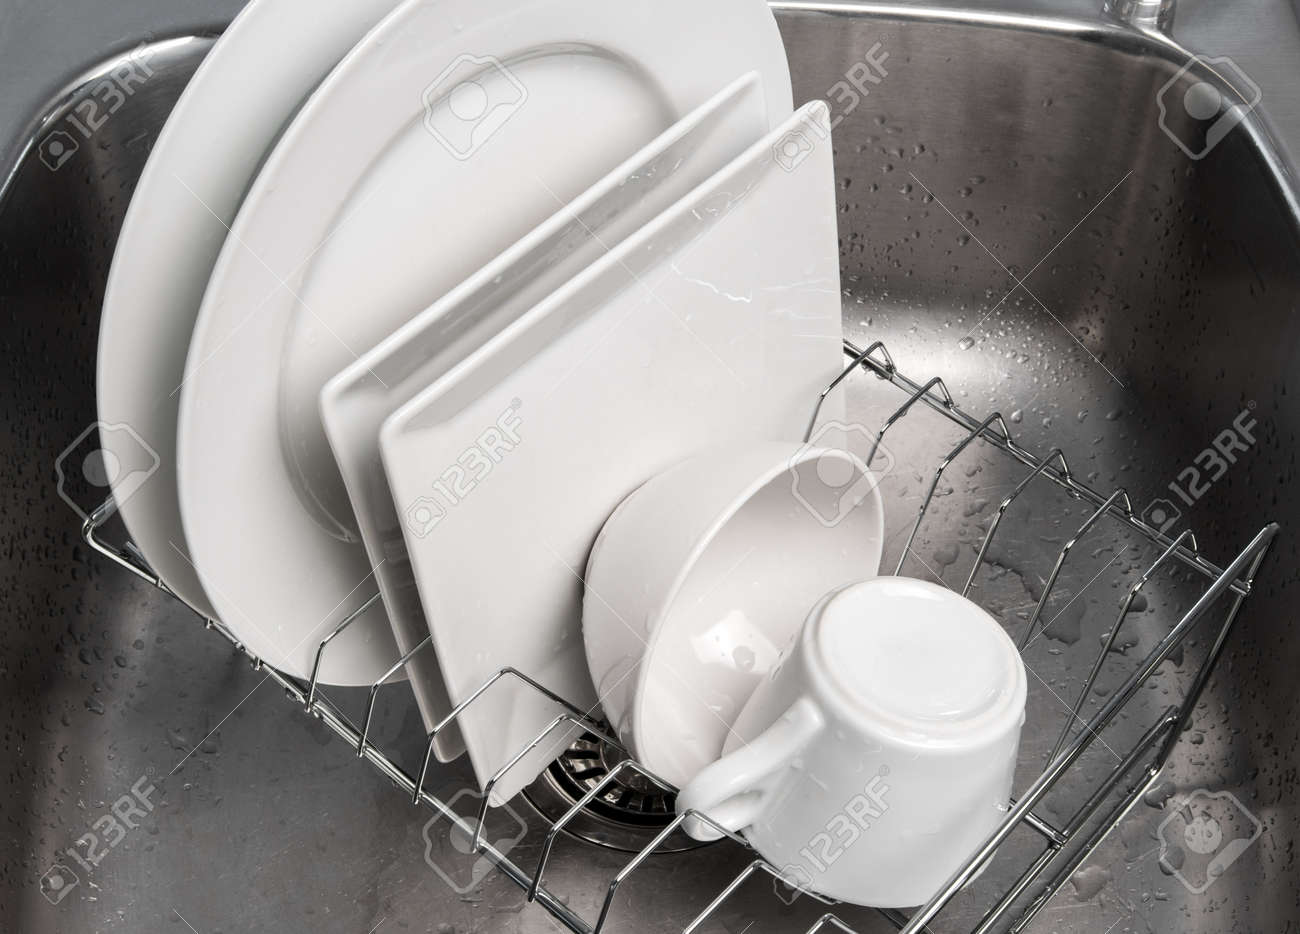 White clean dishes drying on a rack in the kitchen sink Stock Photo - 16729050